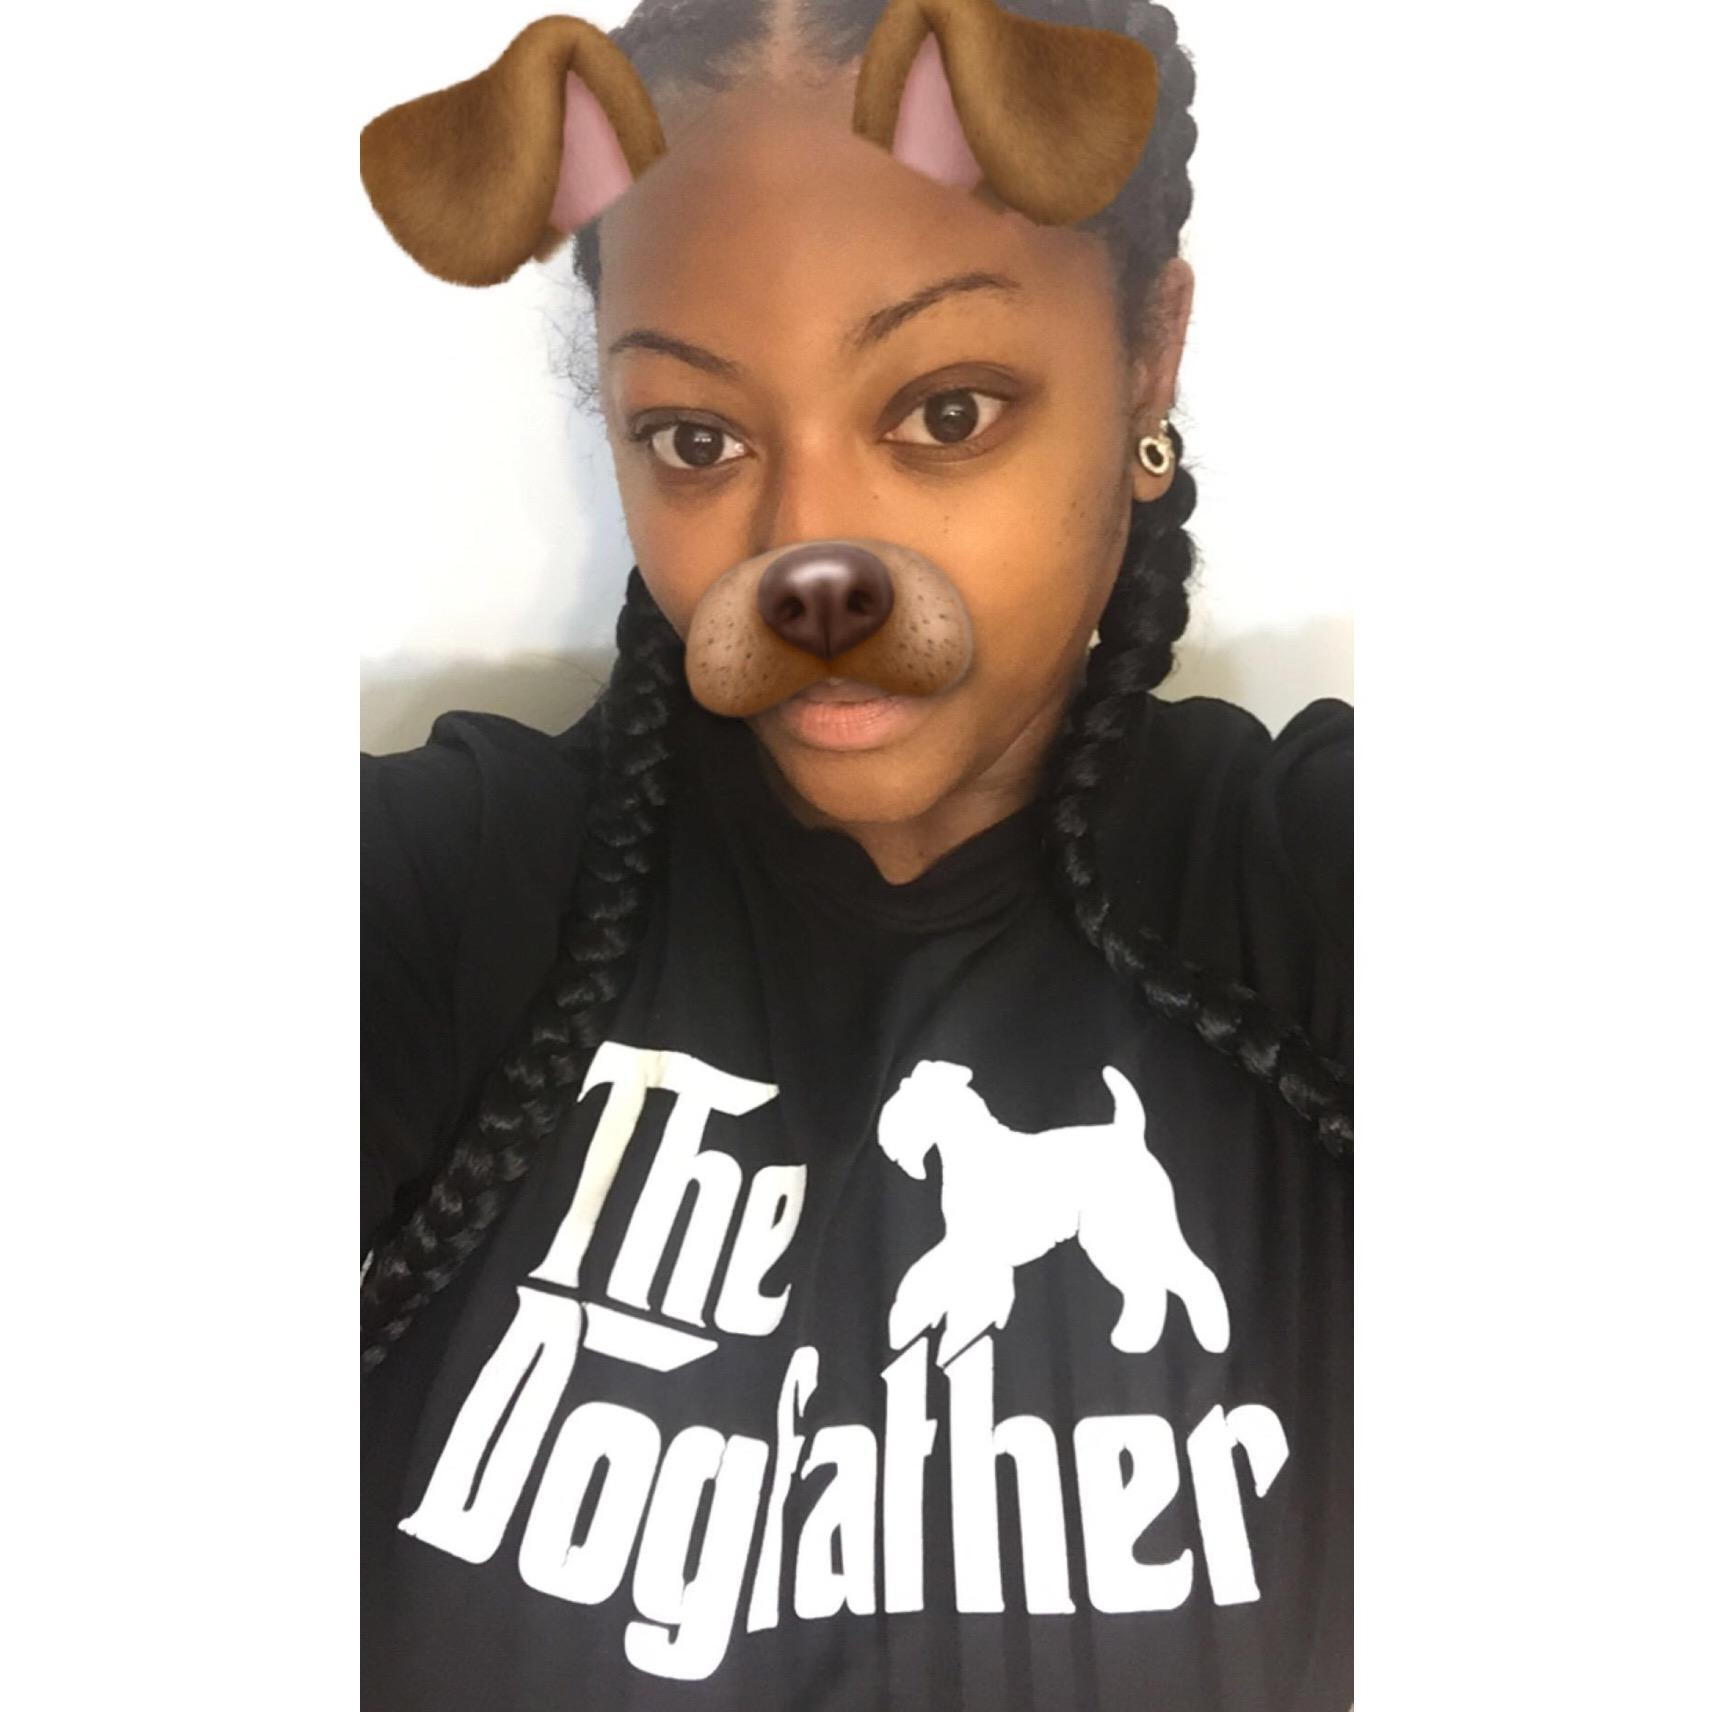 dog walker Niesha